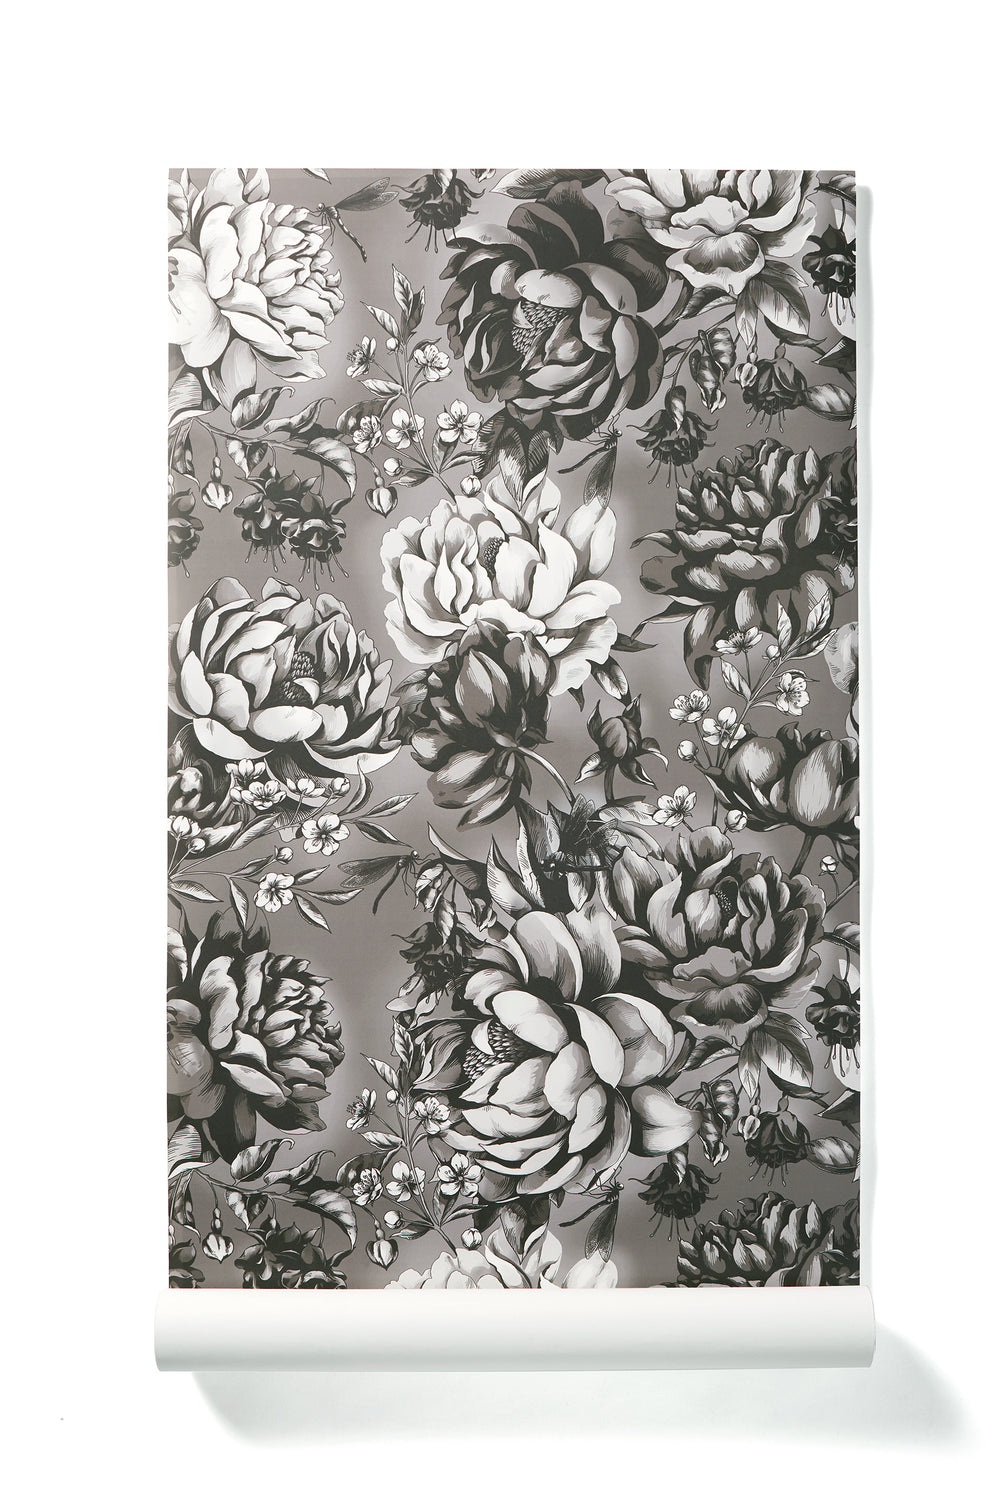 Splendid Opulence - Oversized Black & White Classic Peony Floral Wallpaper